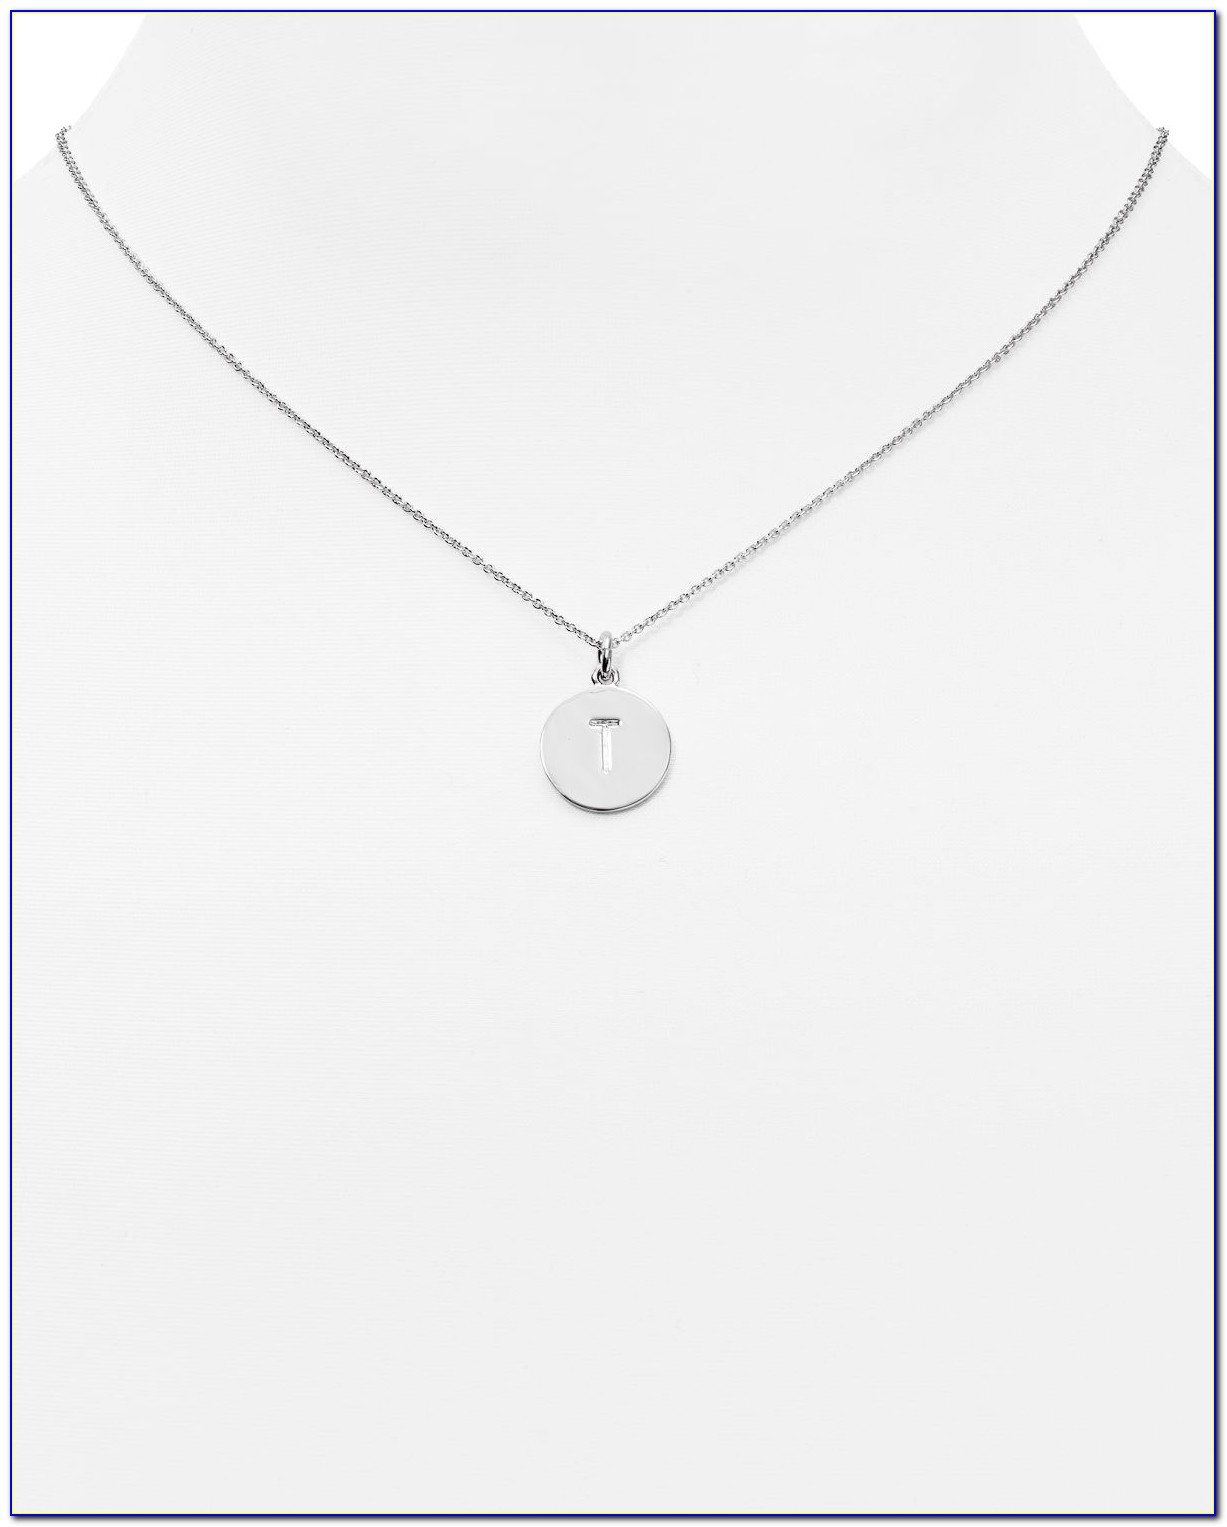 Kate Spade Letter Necklace The Bay